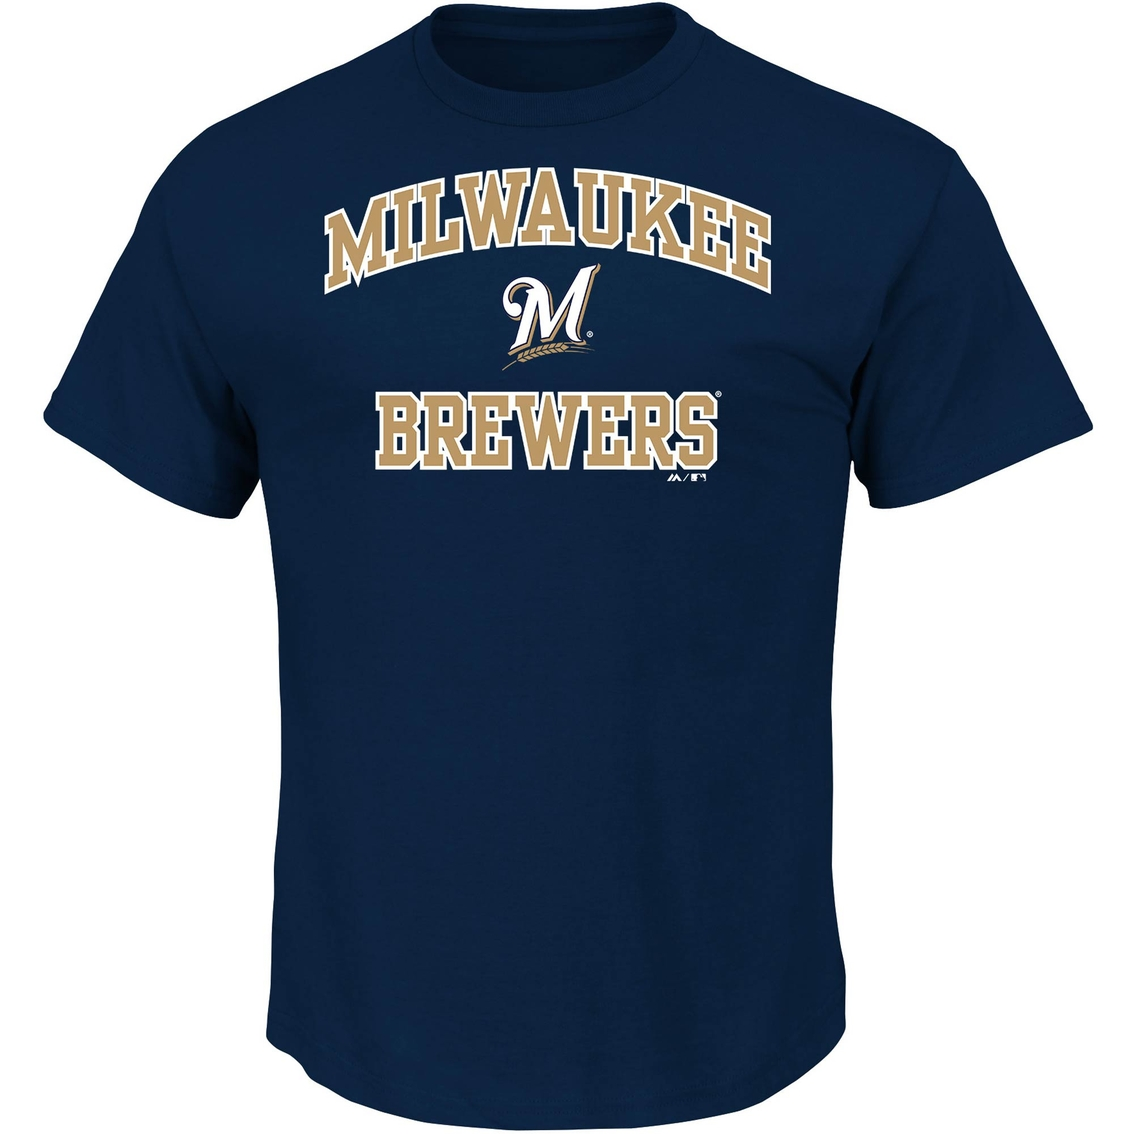 outlet store a13b2 7949d Majestic Mlb Milwaukee Brewers Men's Heart And Soul Tee ...